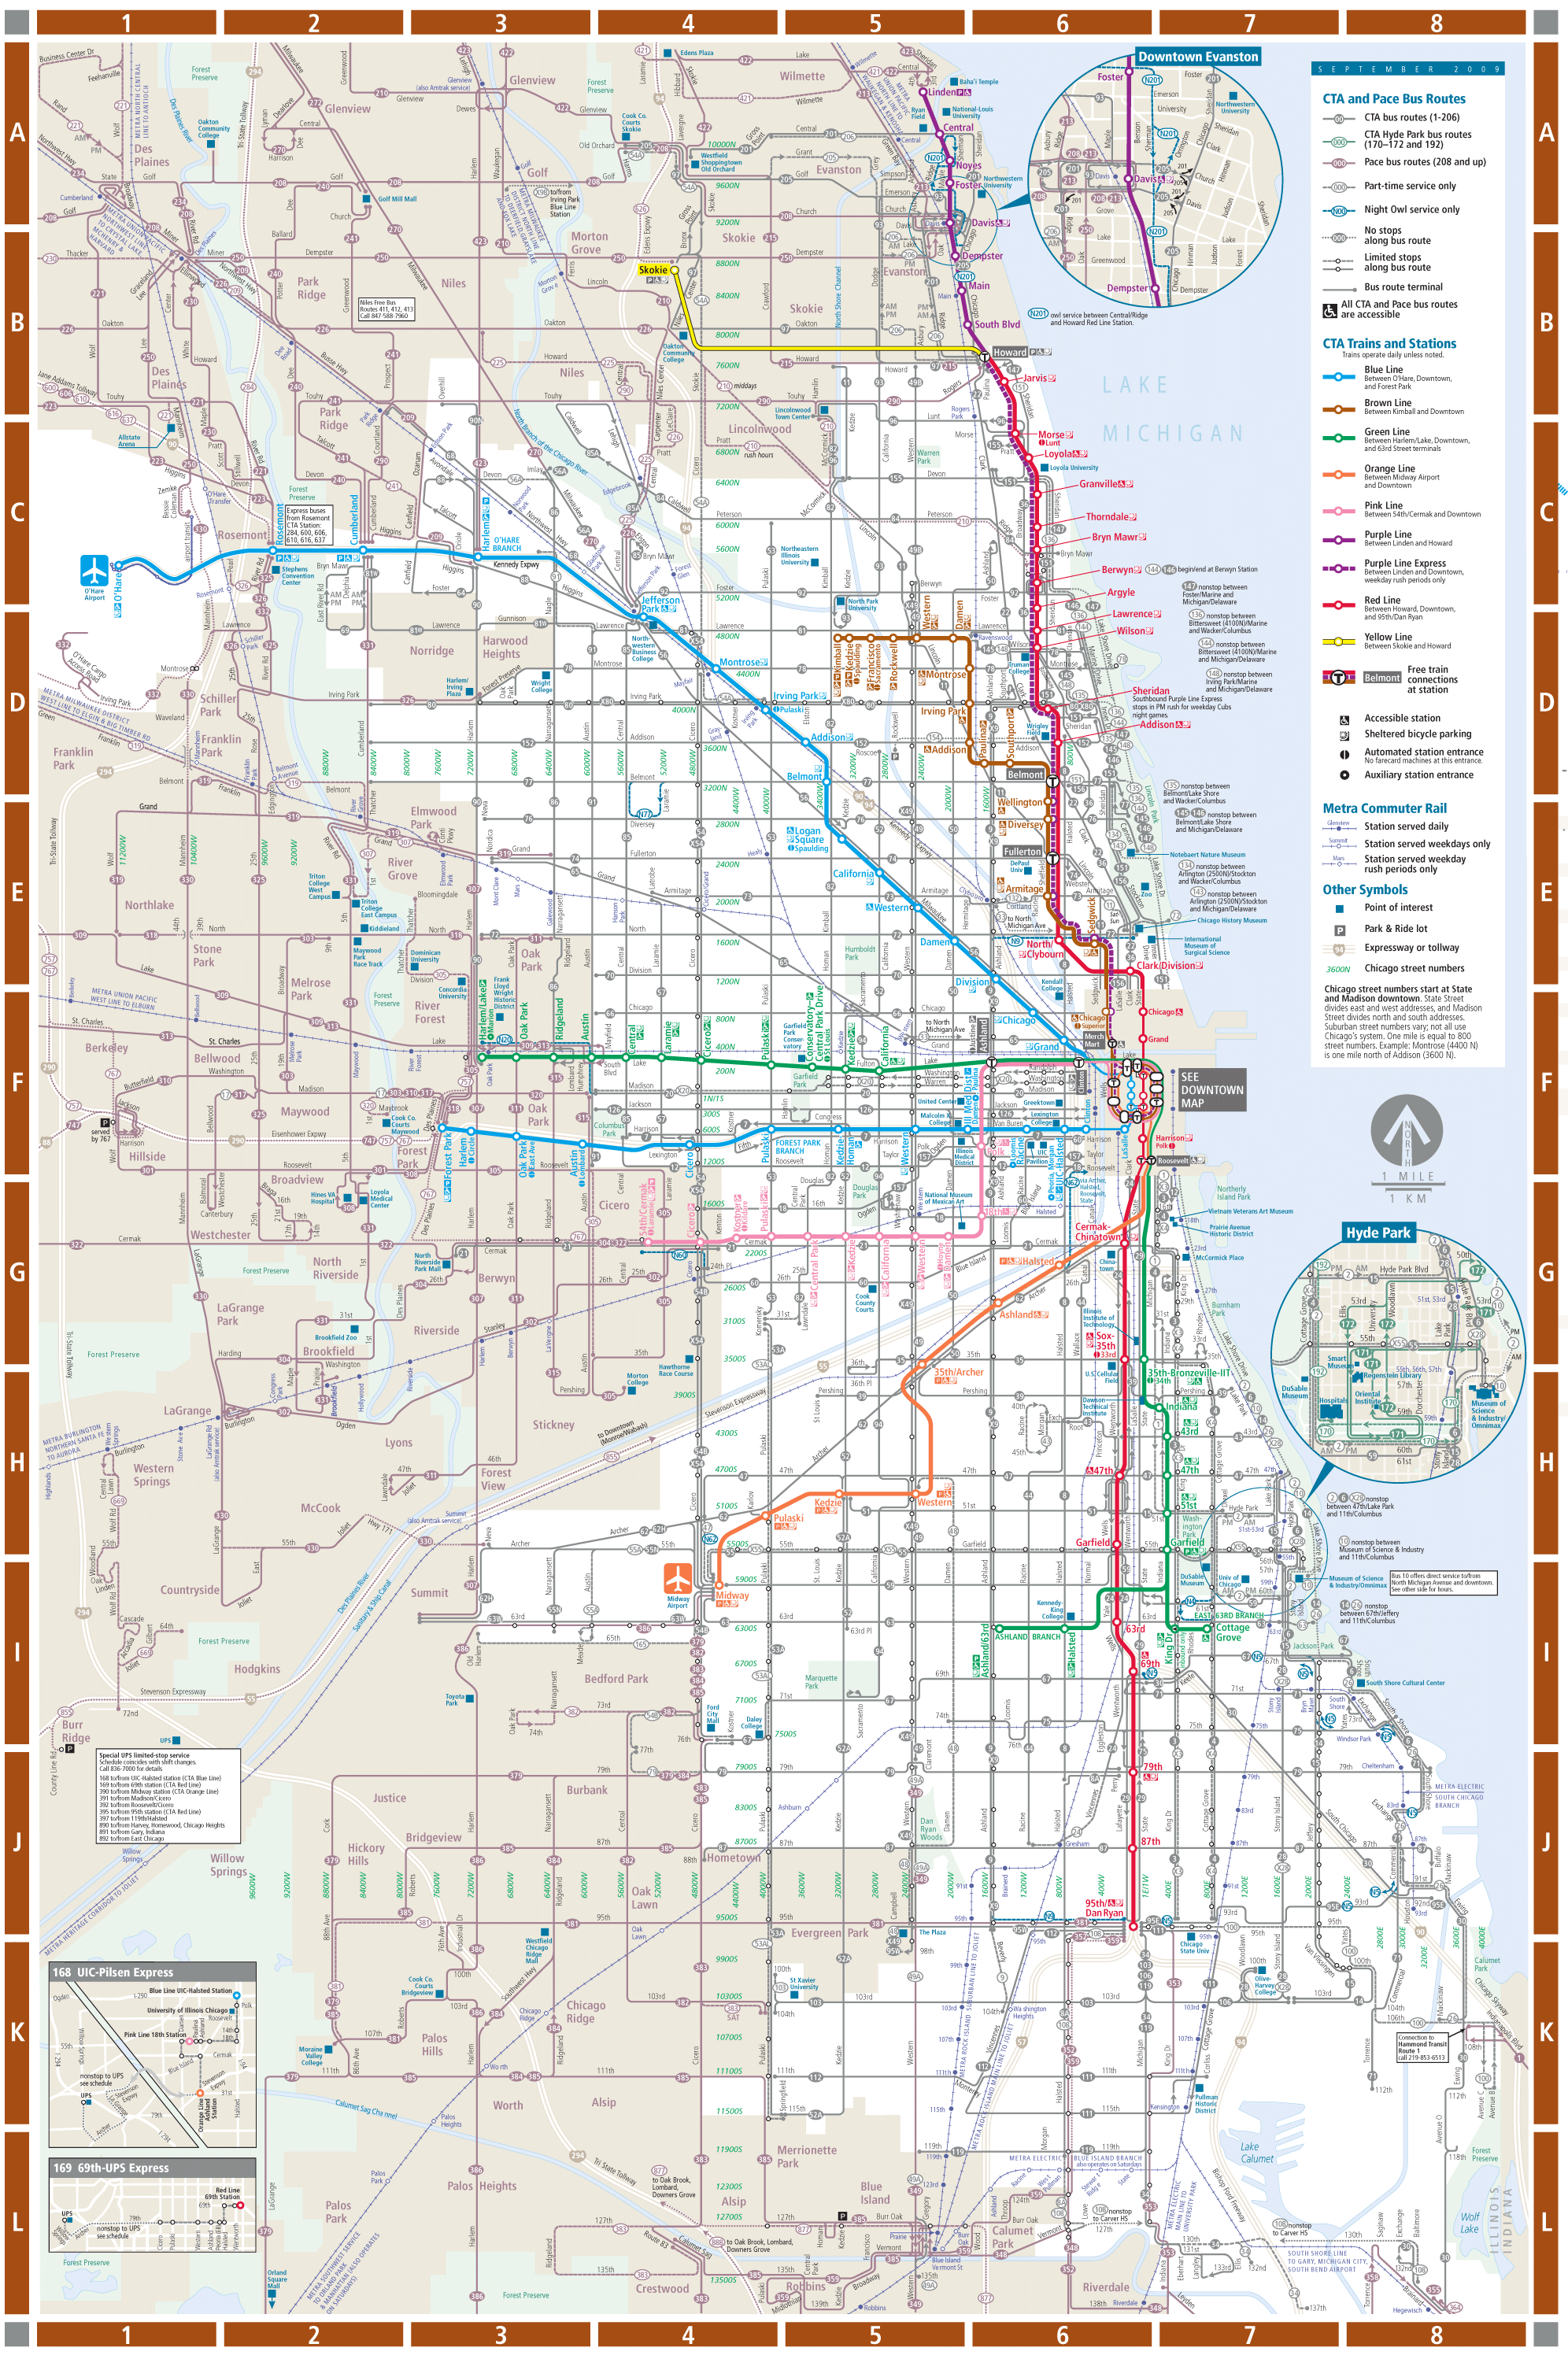 Chicago Detailed Rail Transport Map Mapsofnet